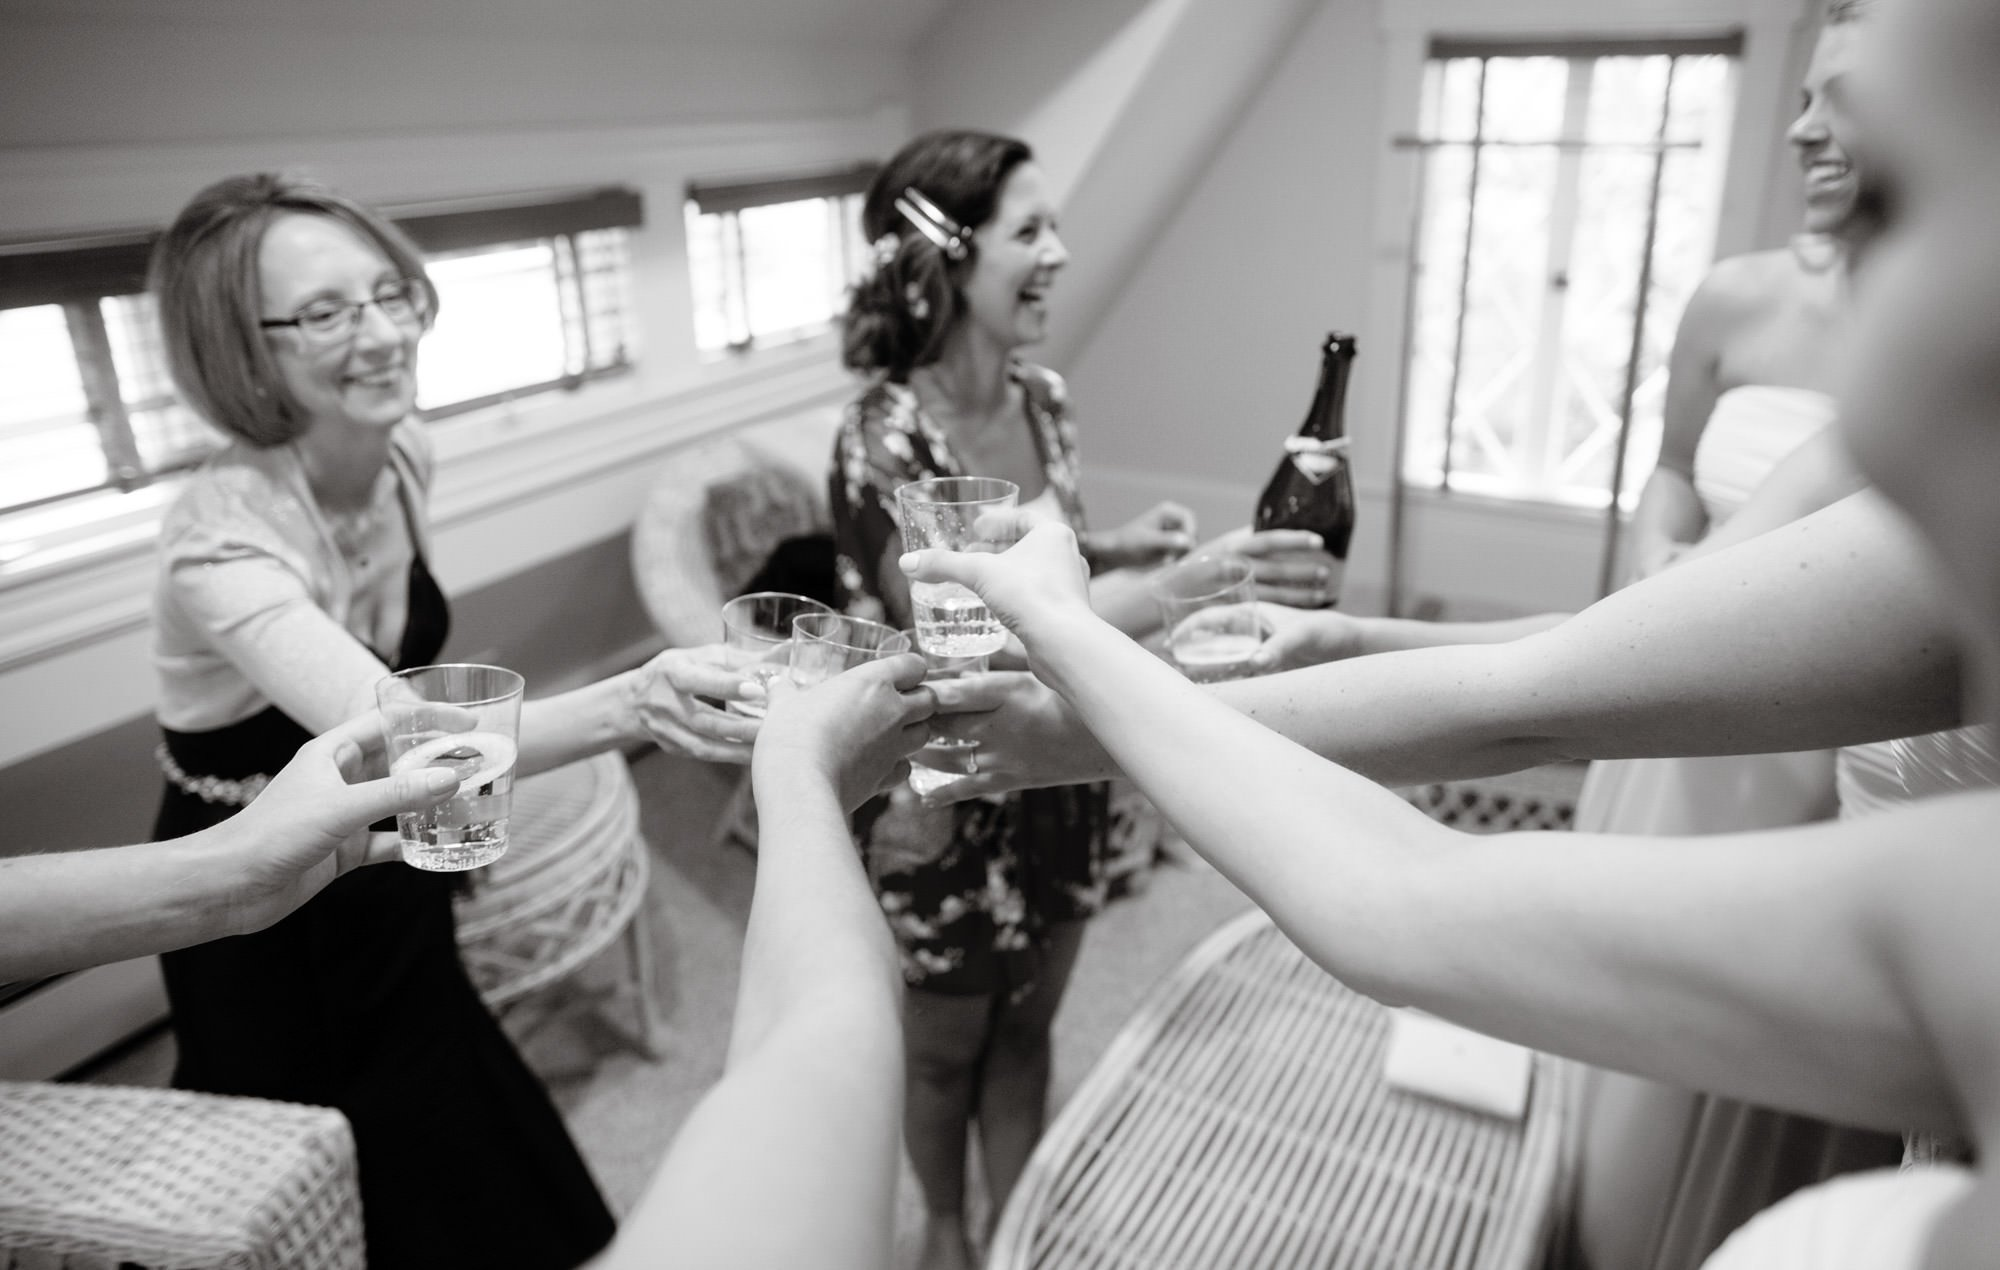 Bridesmaids give a toast prior to the wedding ceremony at Hendry House in Arlington, VA.